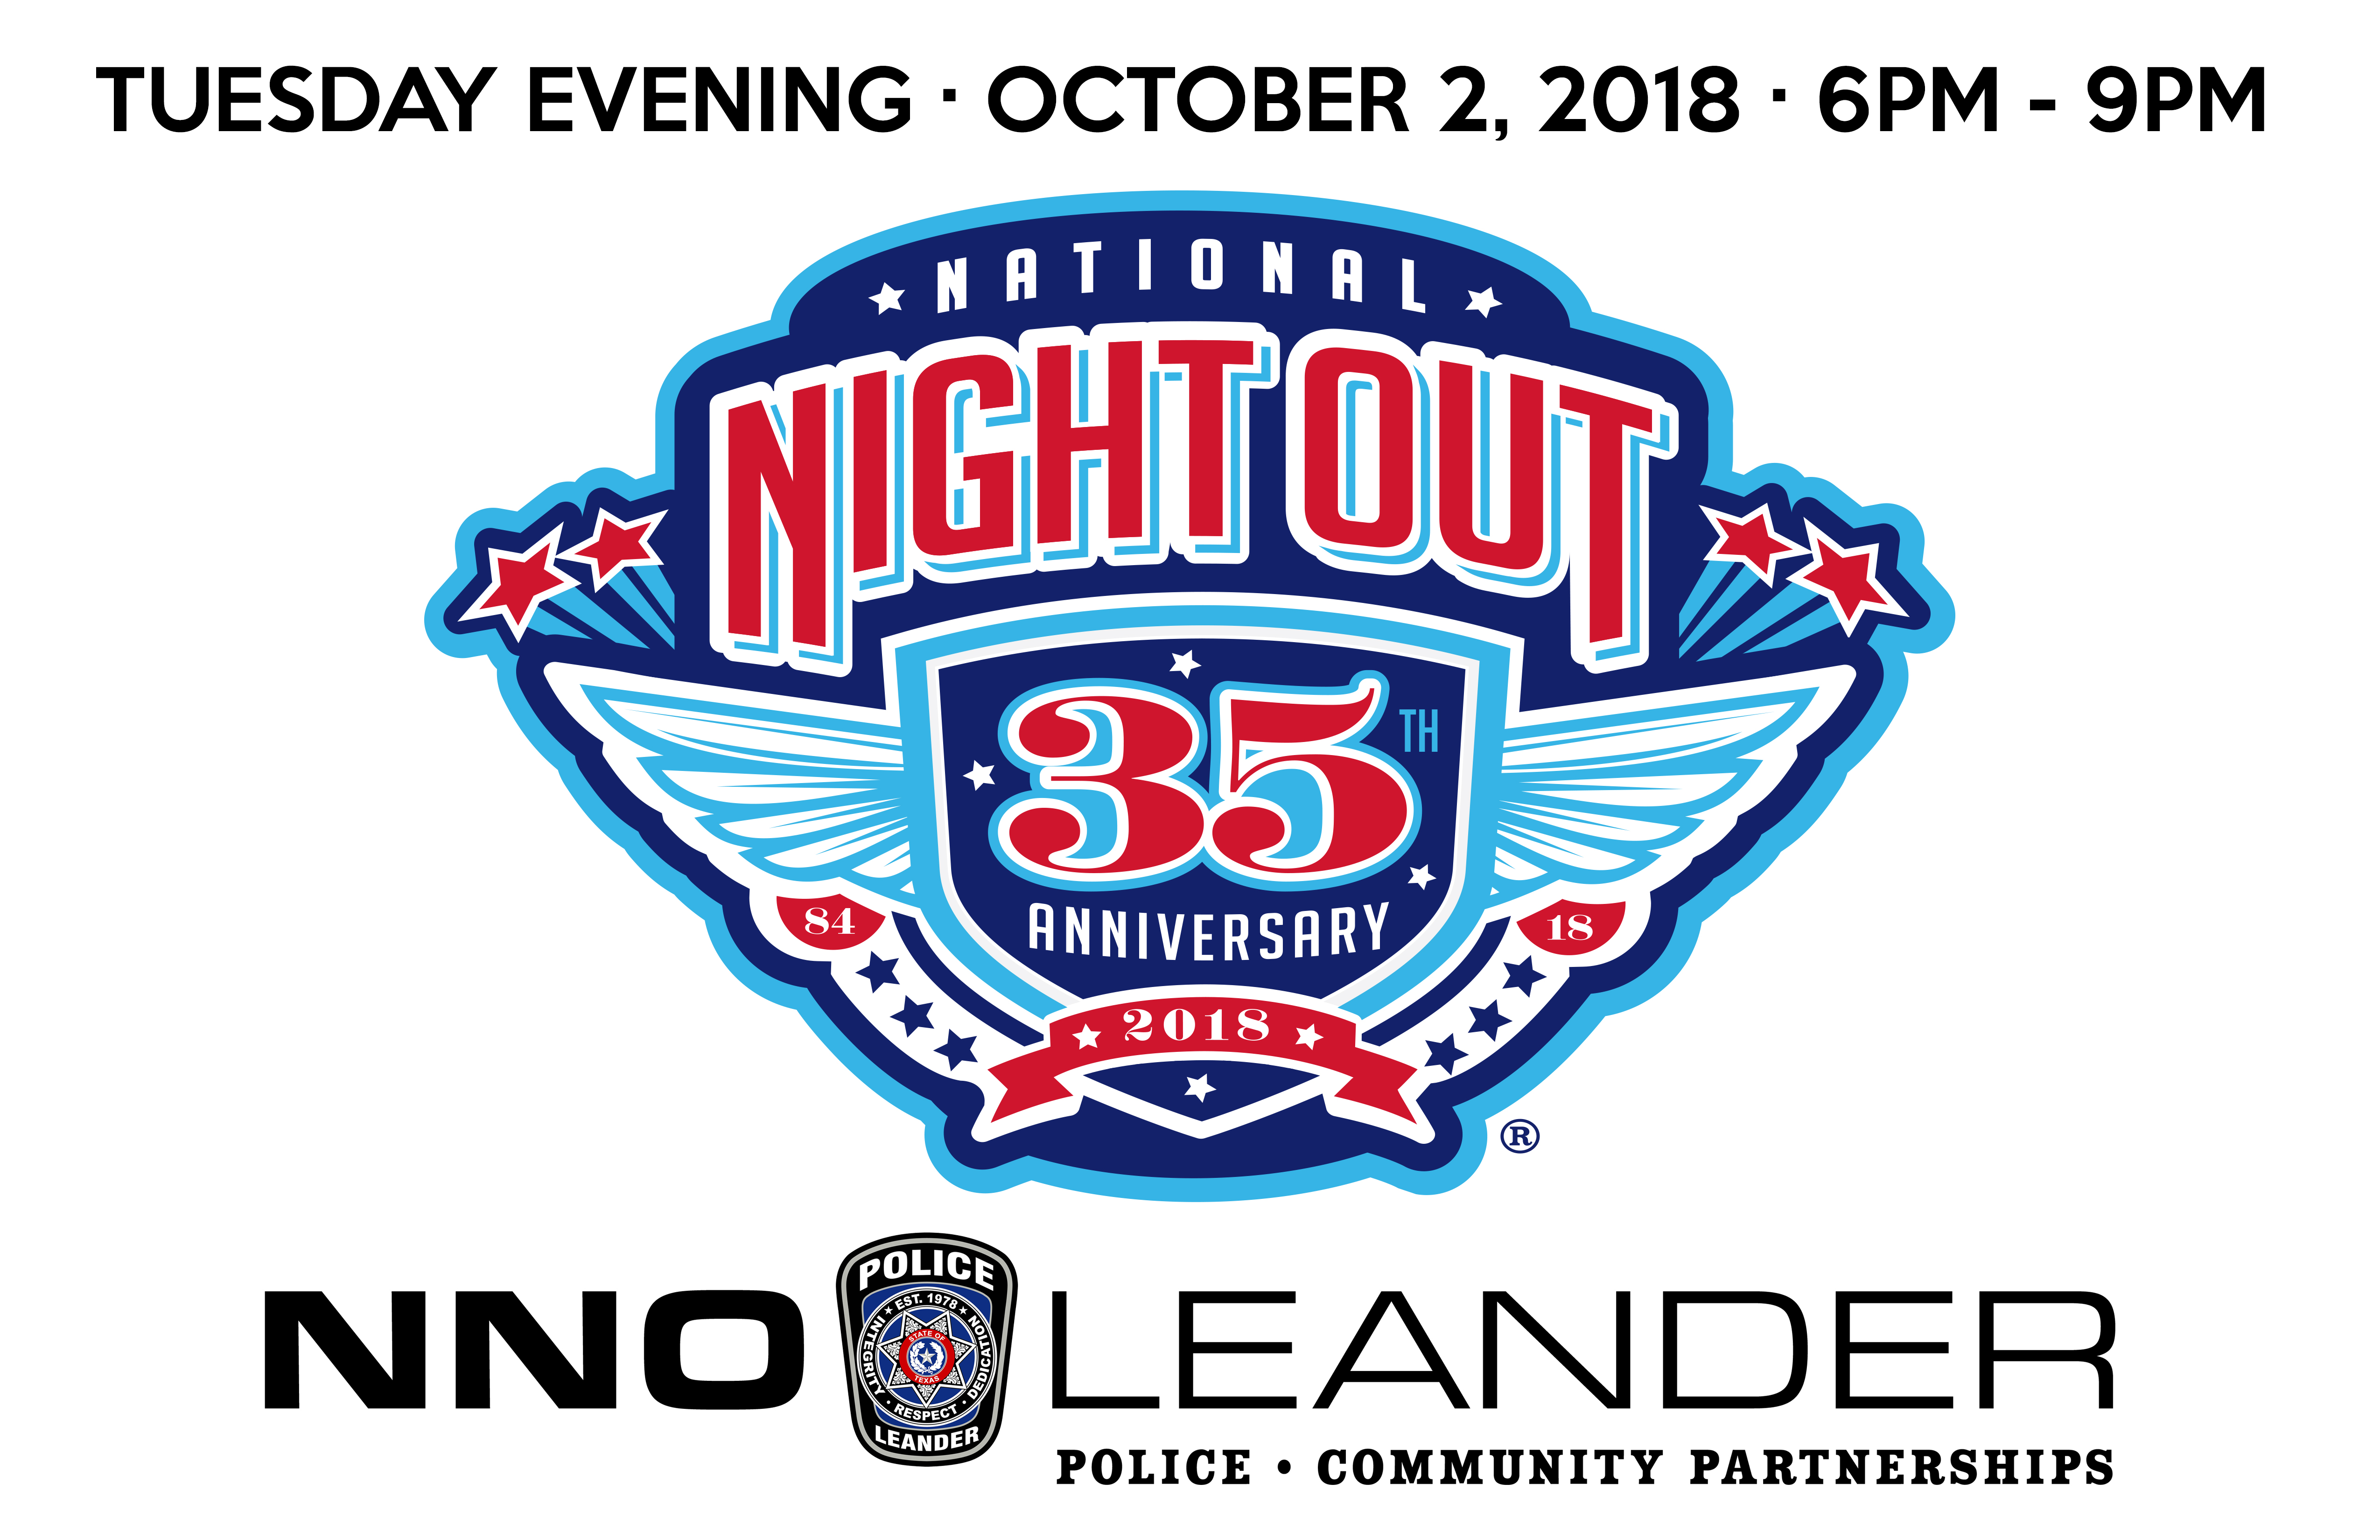 National Night Out City Of Leander Texas